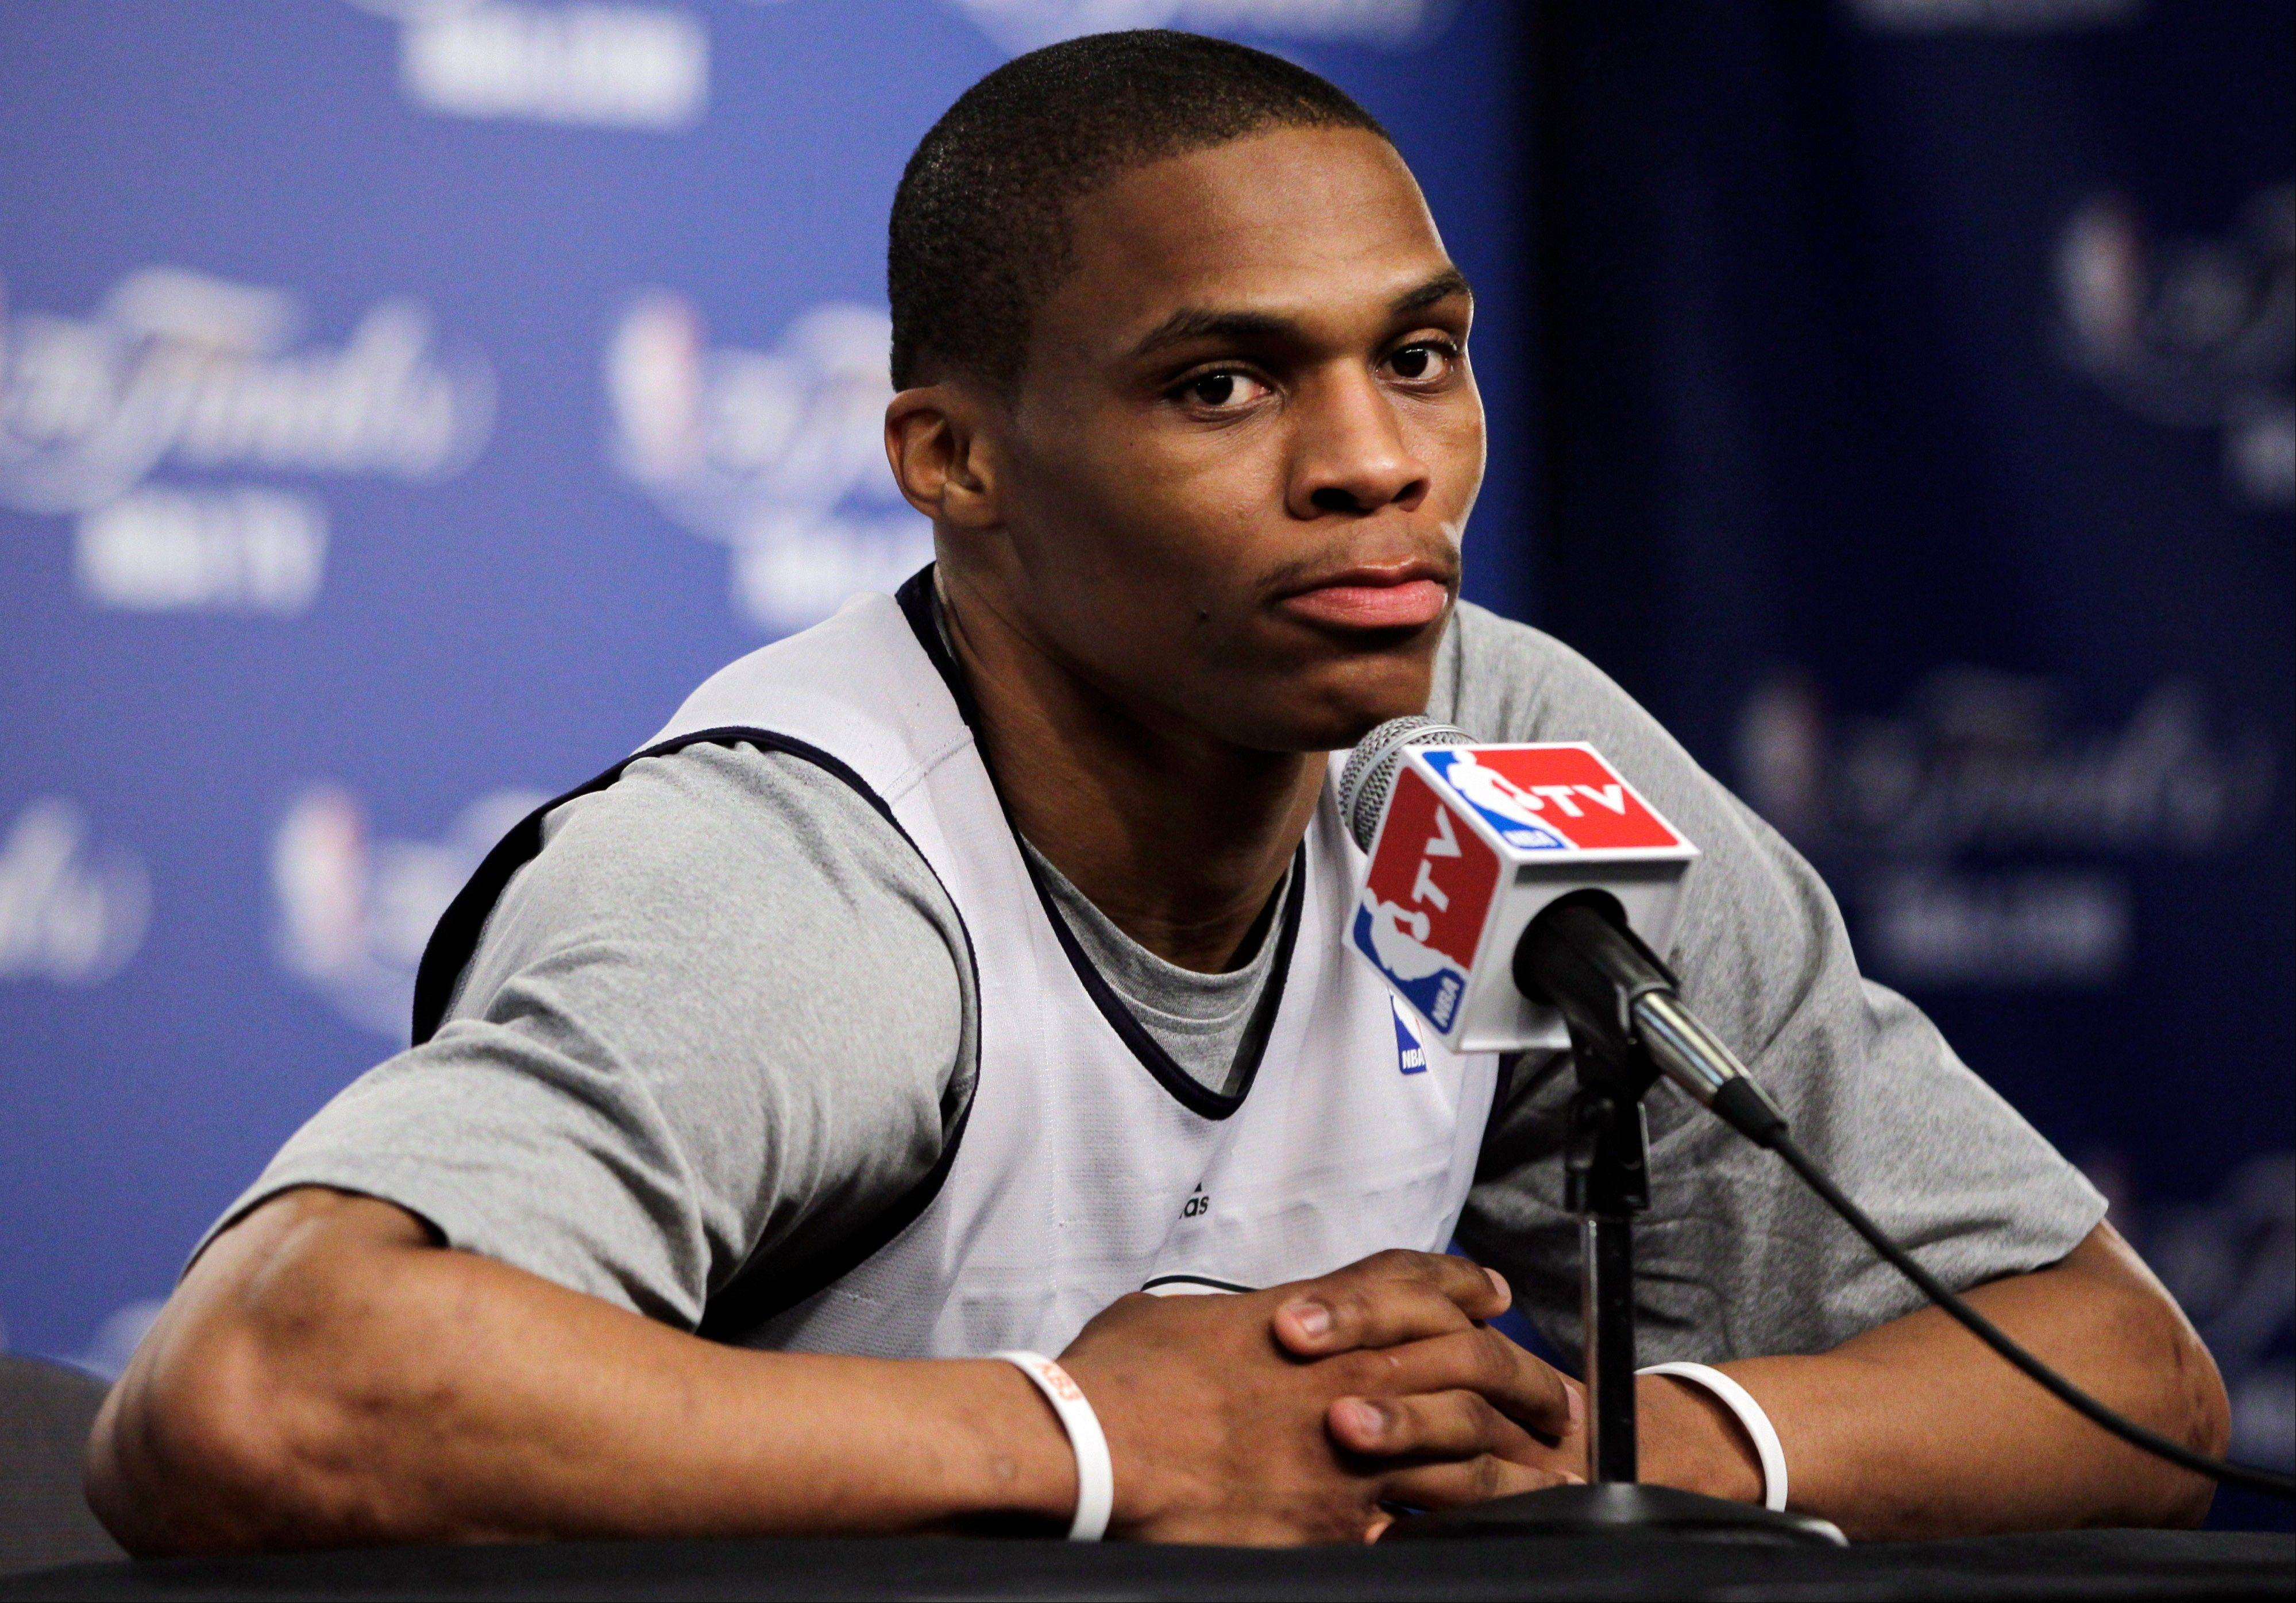 Oklahoma City Thunder guard Russell Westbrook averaged 20.5 points while Oklahoma City split two regular-season meetings with the Heat, but was relatively inefficient.